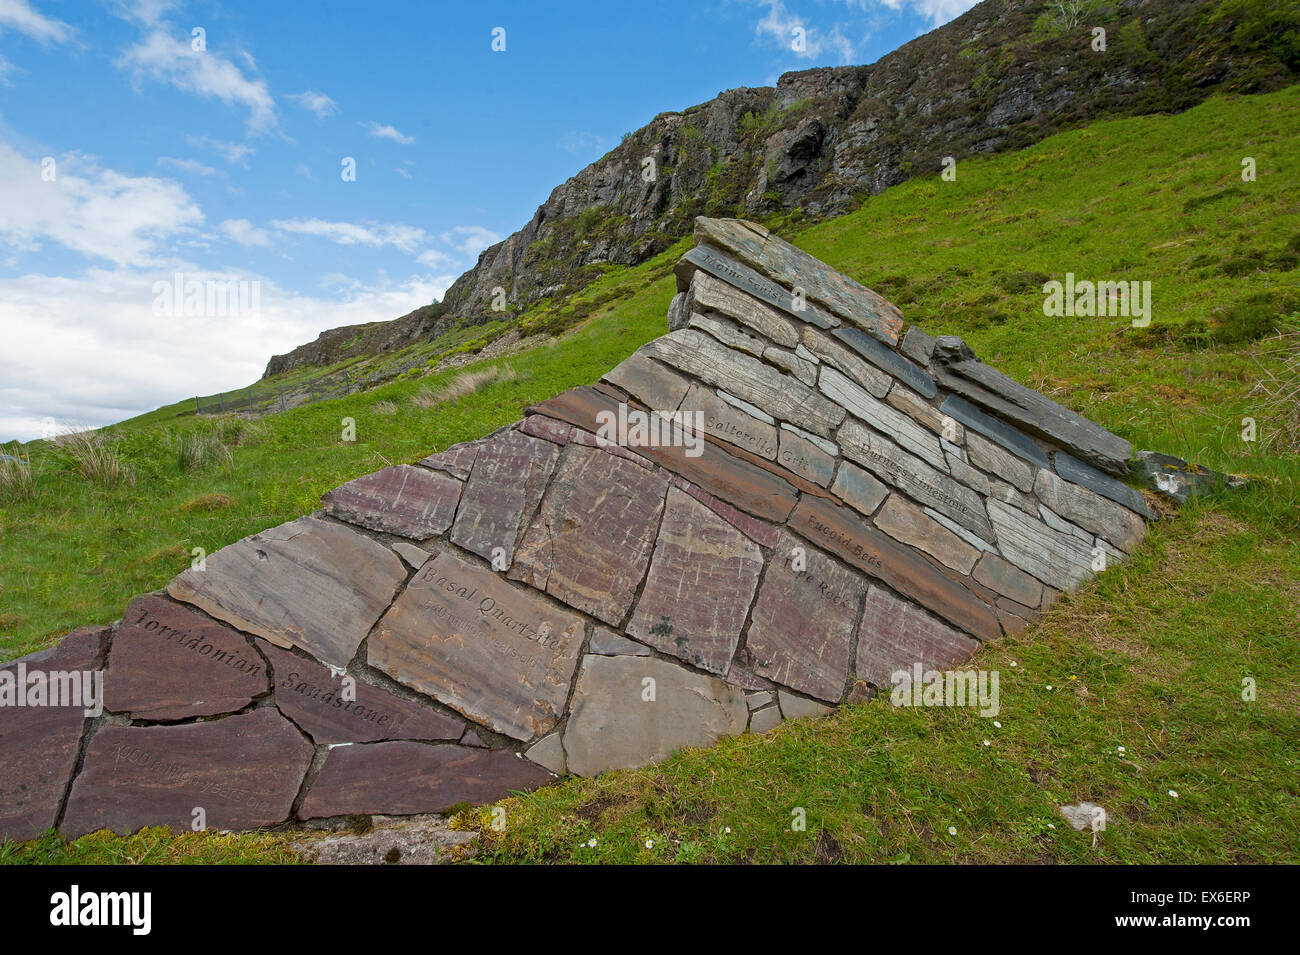 A man made 'wall' demonstrating the geological layers tilted by the Moine Thrust at Knockan Crag.  SCO 9903. Stock Photo